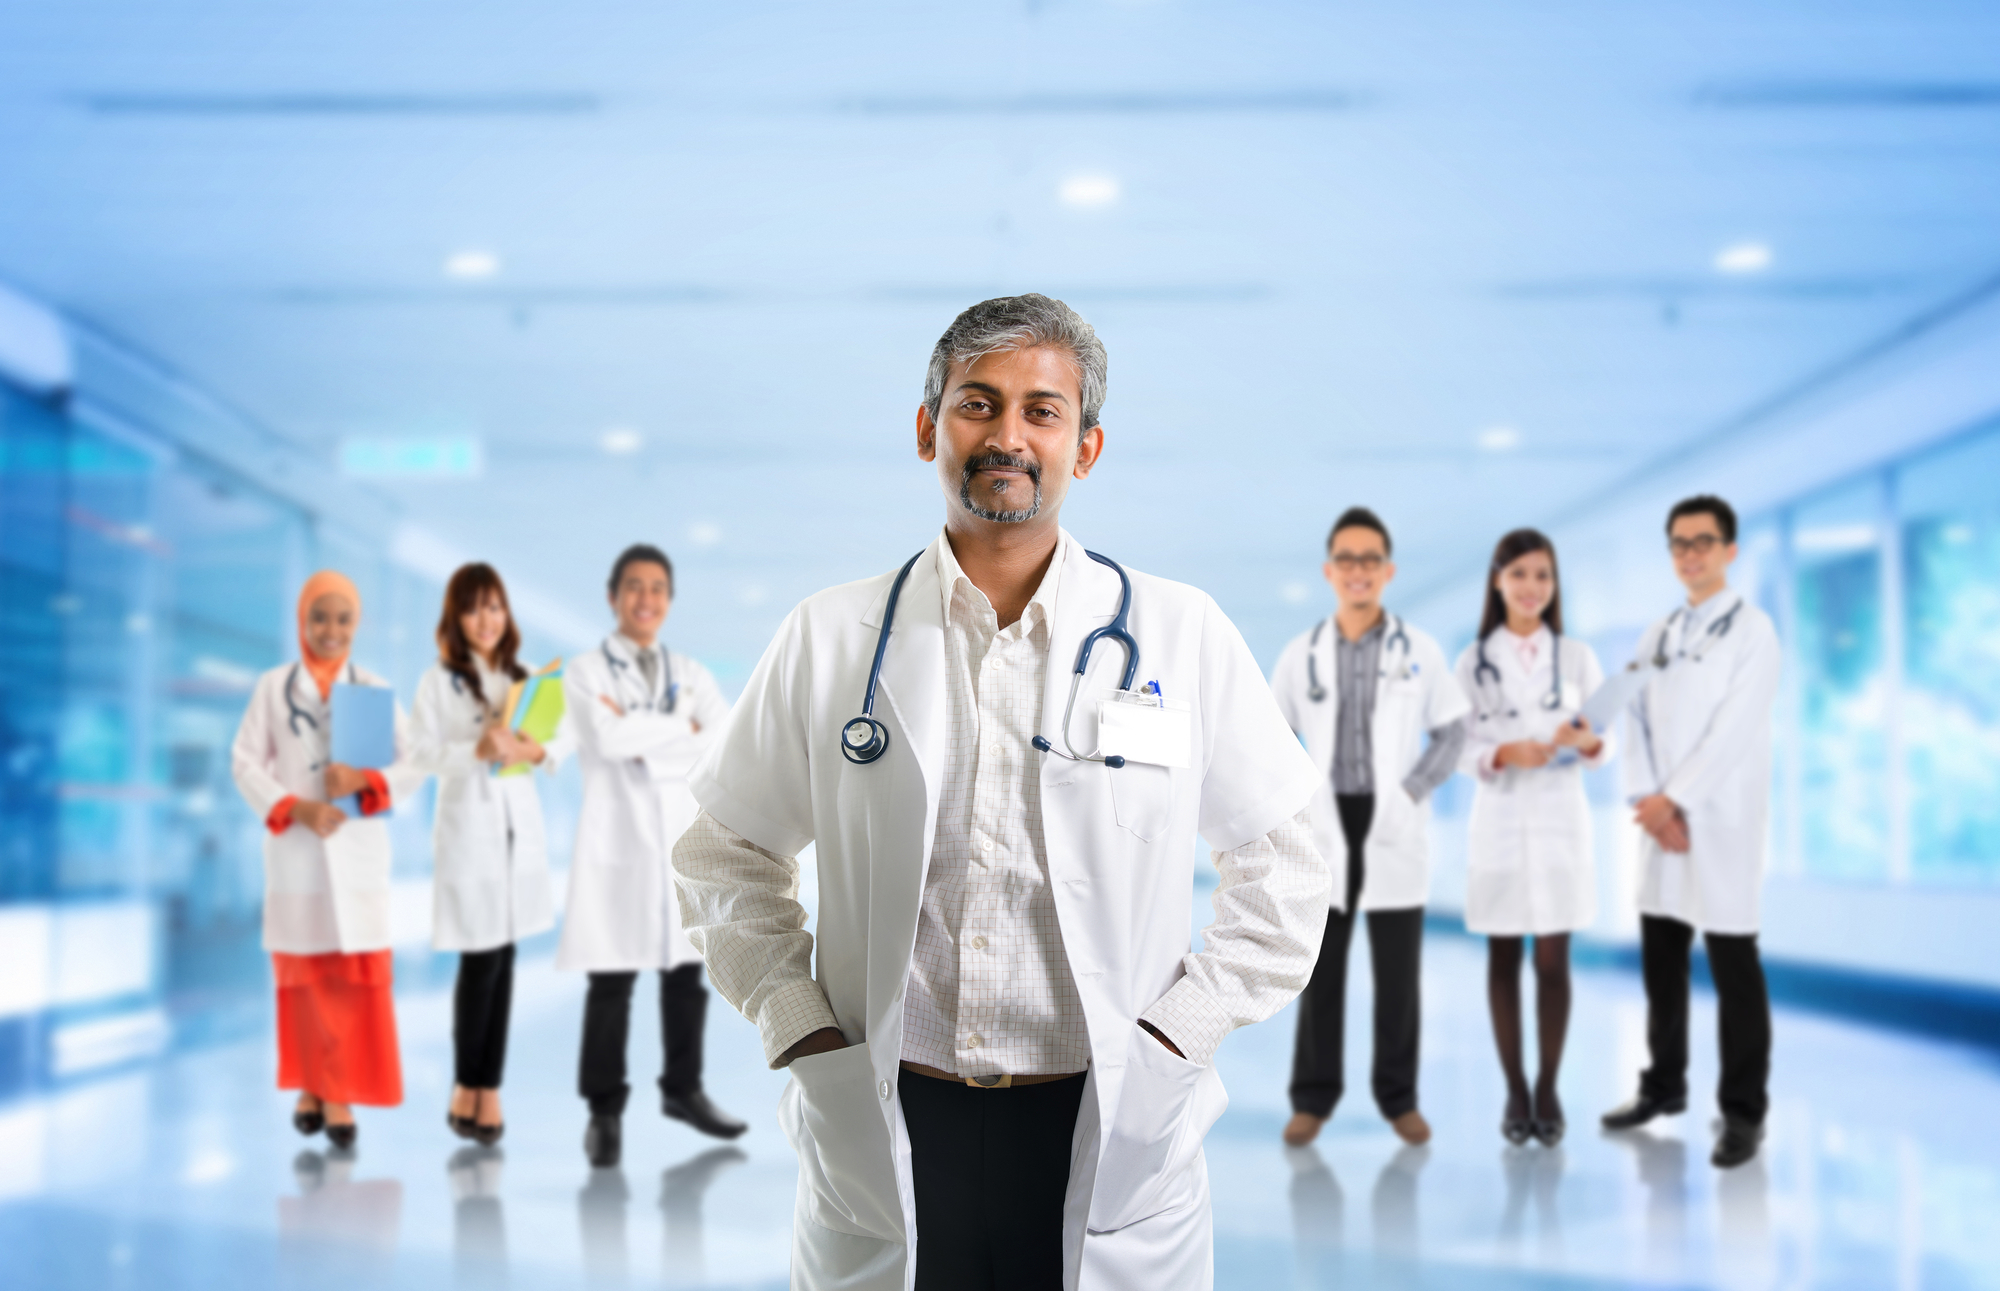 Team of Doctors with Leader